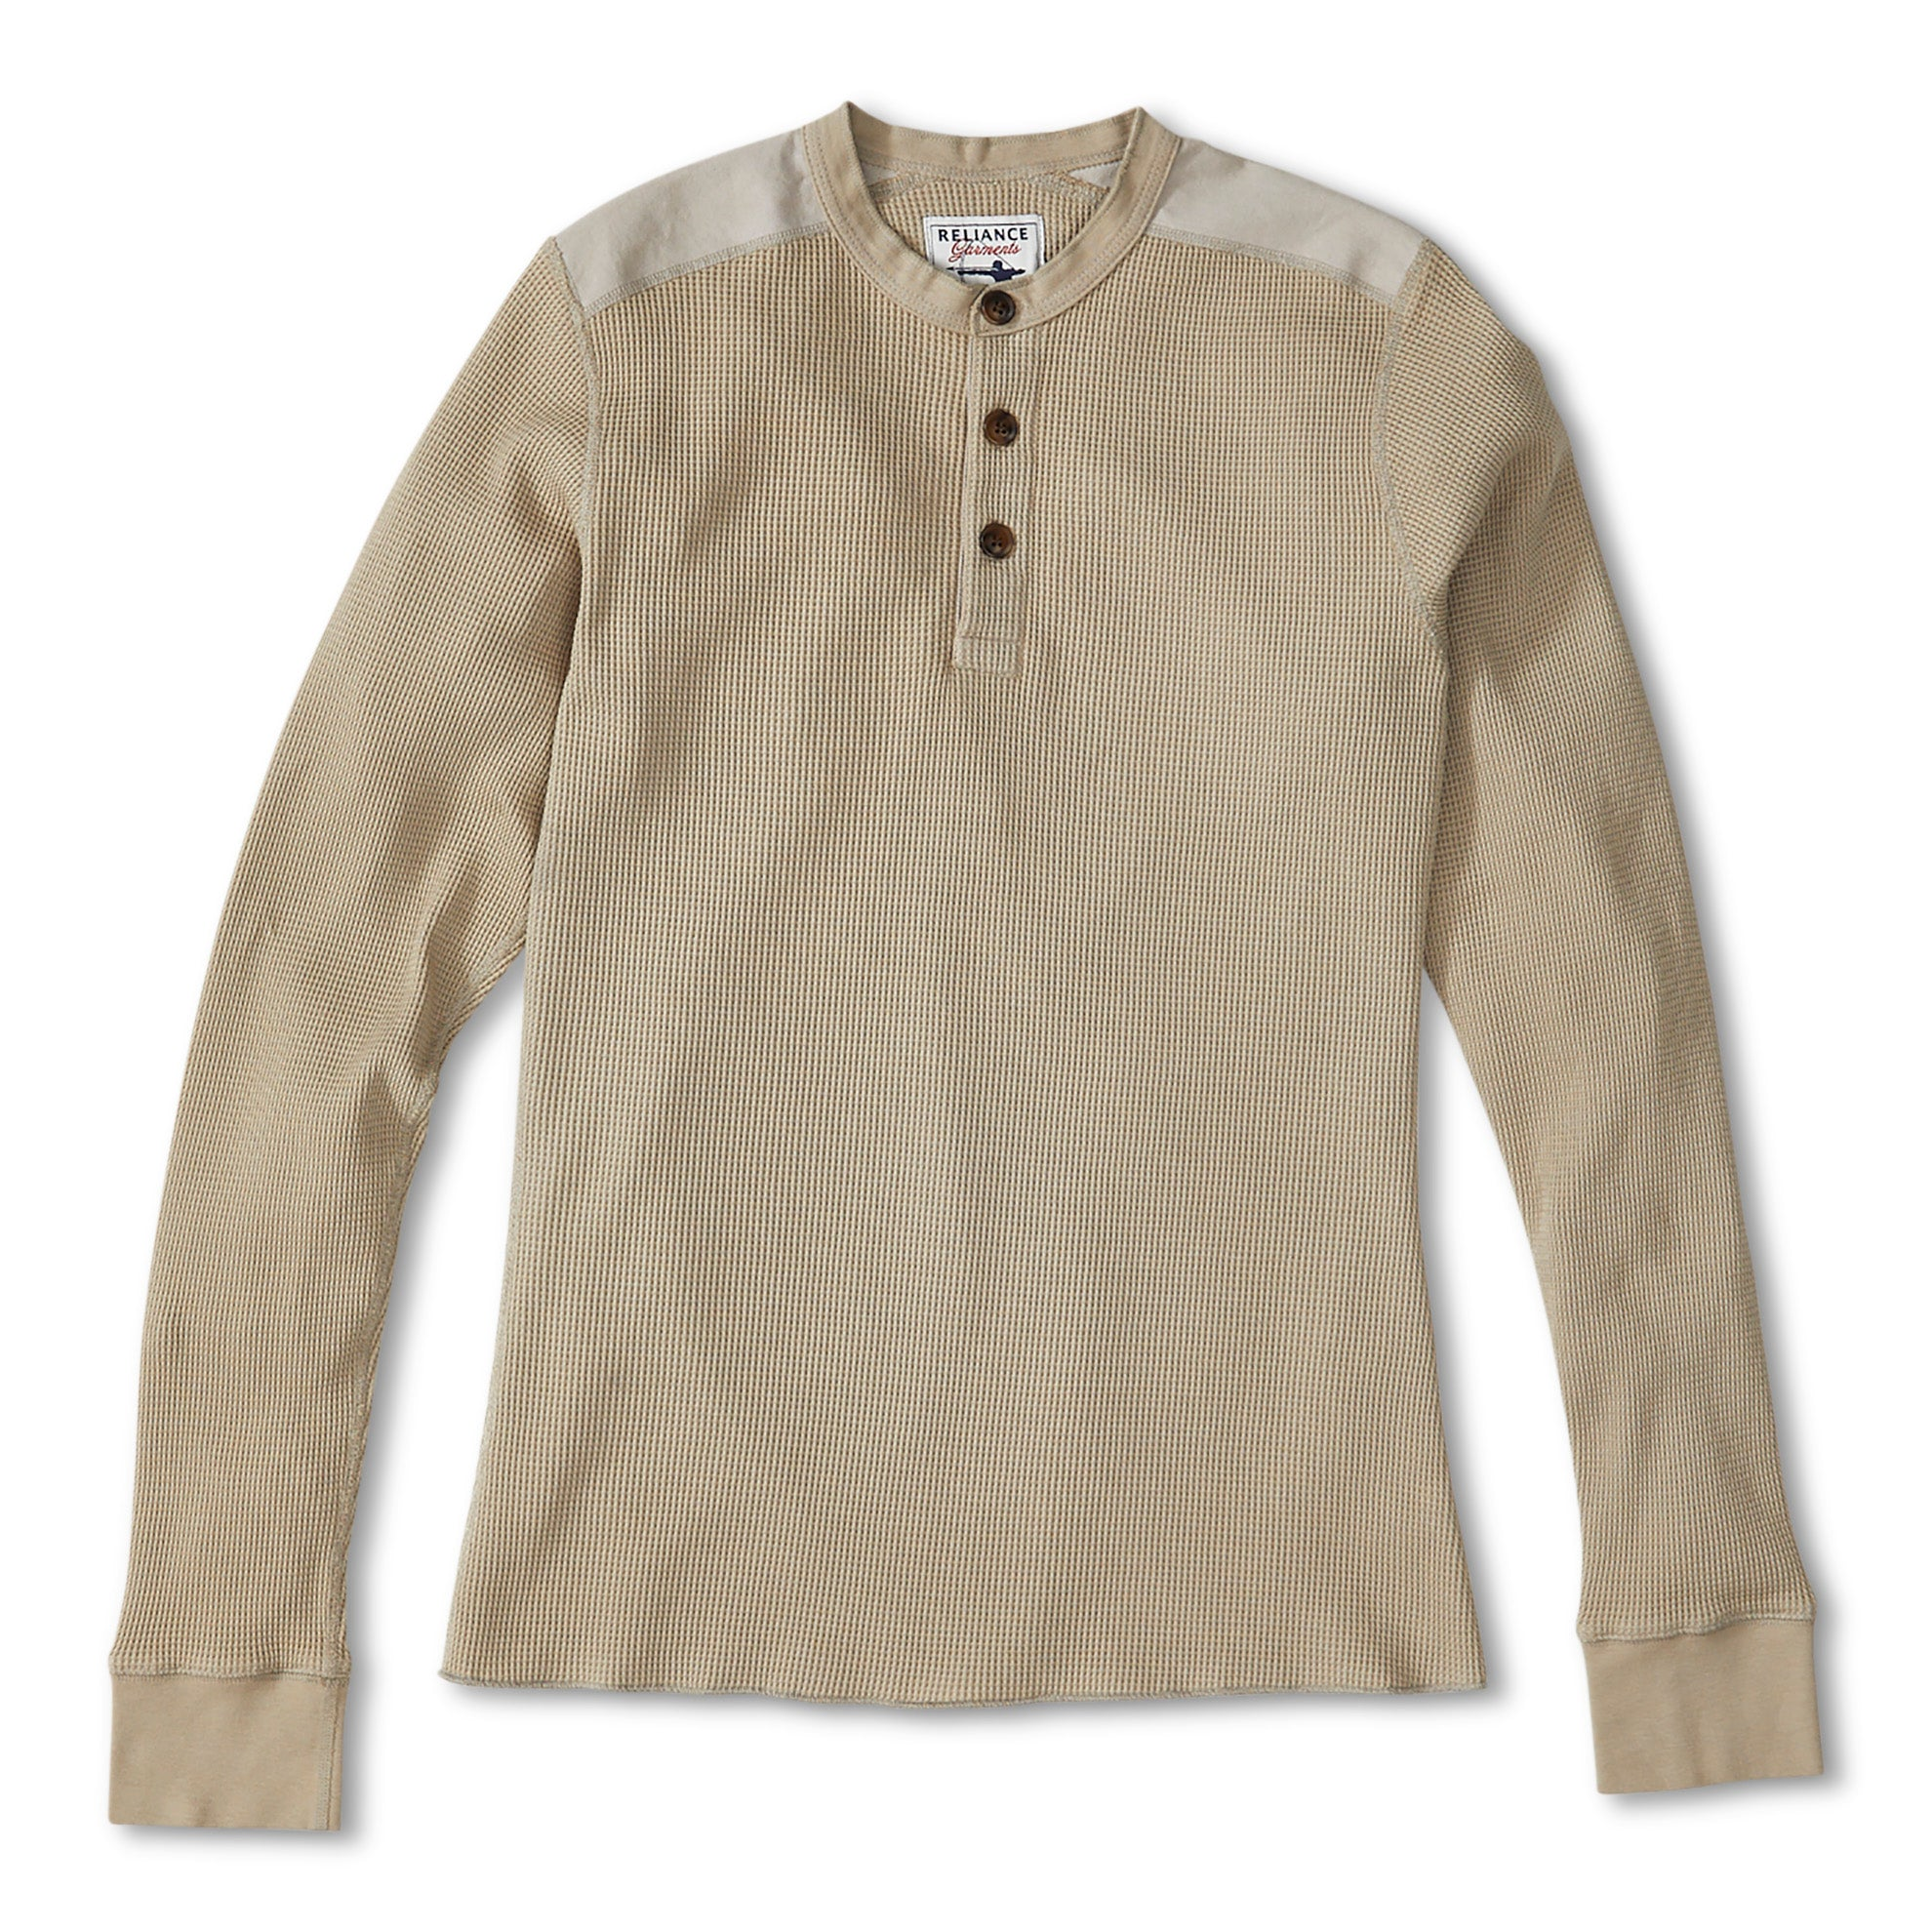 Reliance Garments Thermal Henley